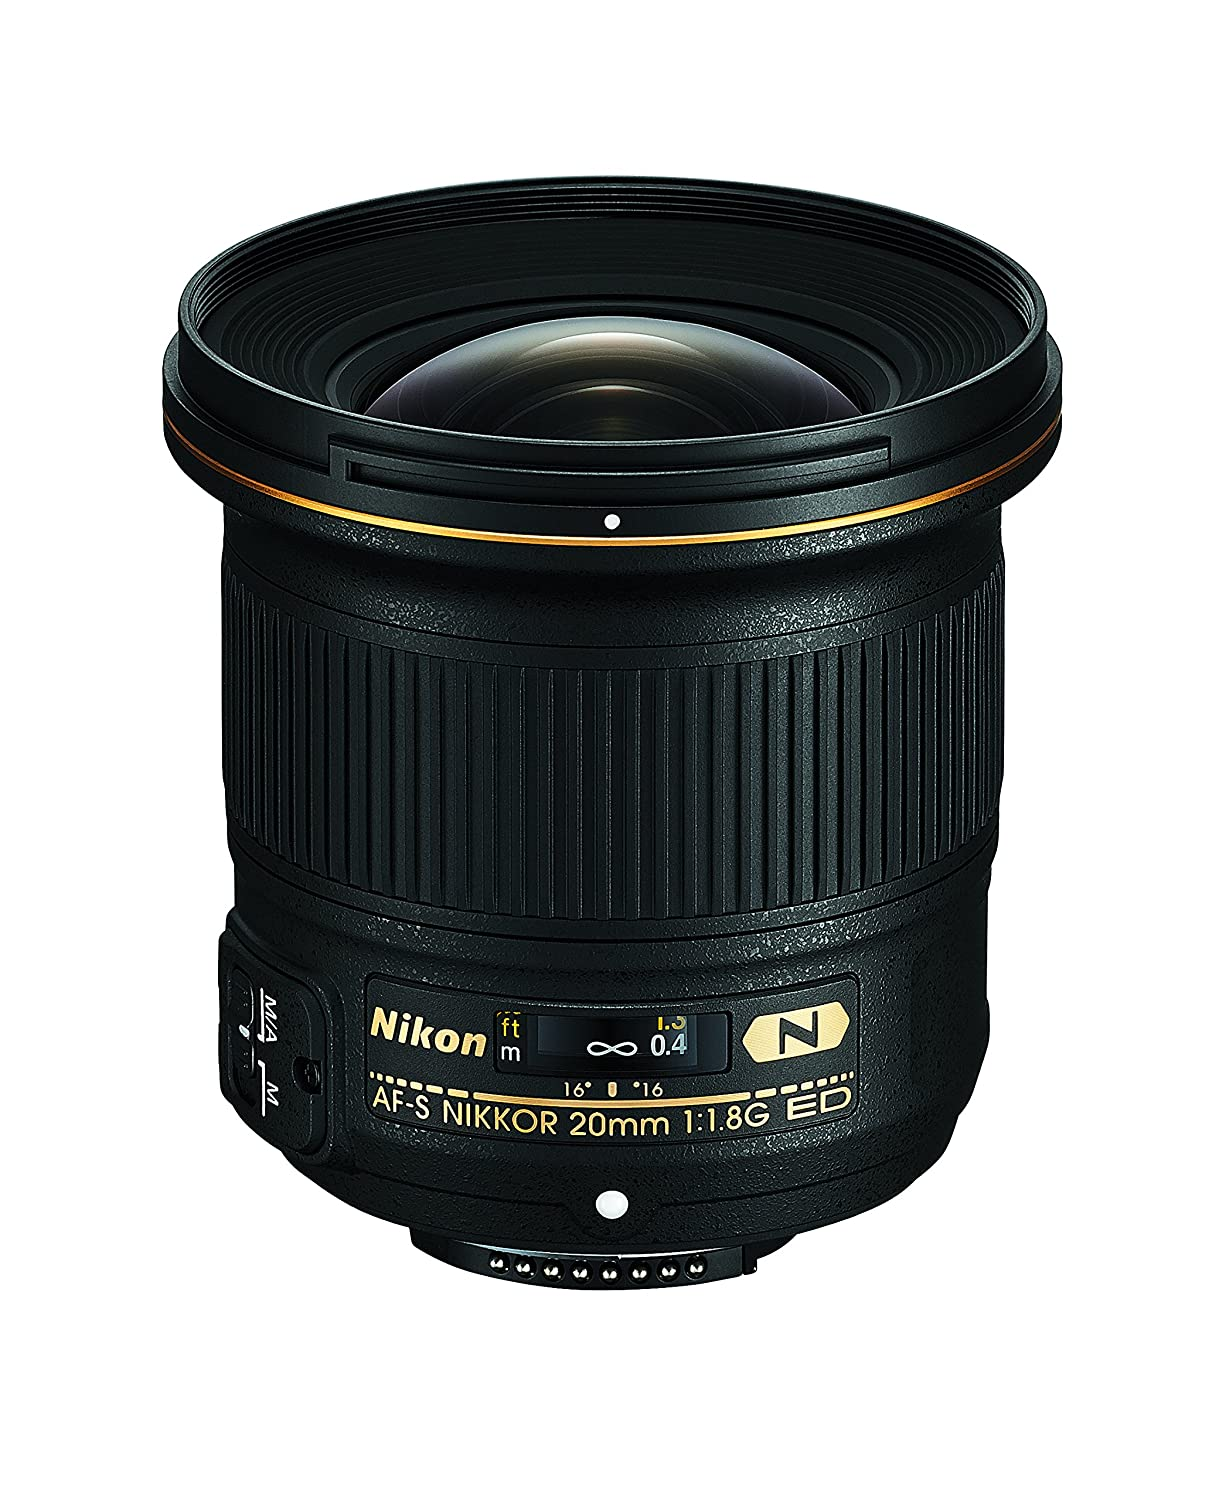 Nikon AF-S FX NIKKOR 20mm f/1.8G ED Fixed Zoom Lens with Auto Focus for Nikon DSLR Cameras